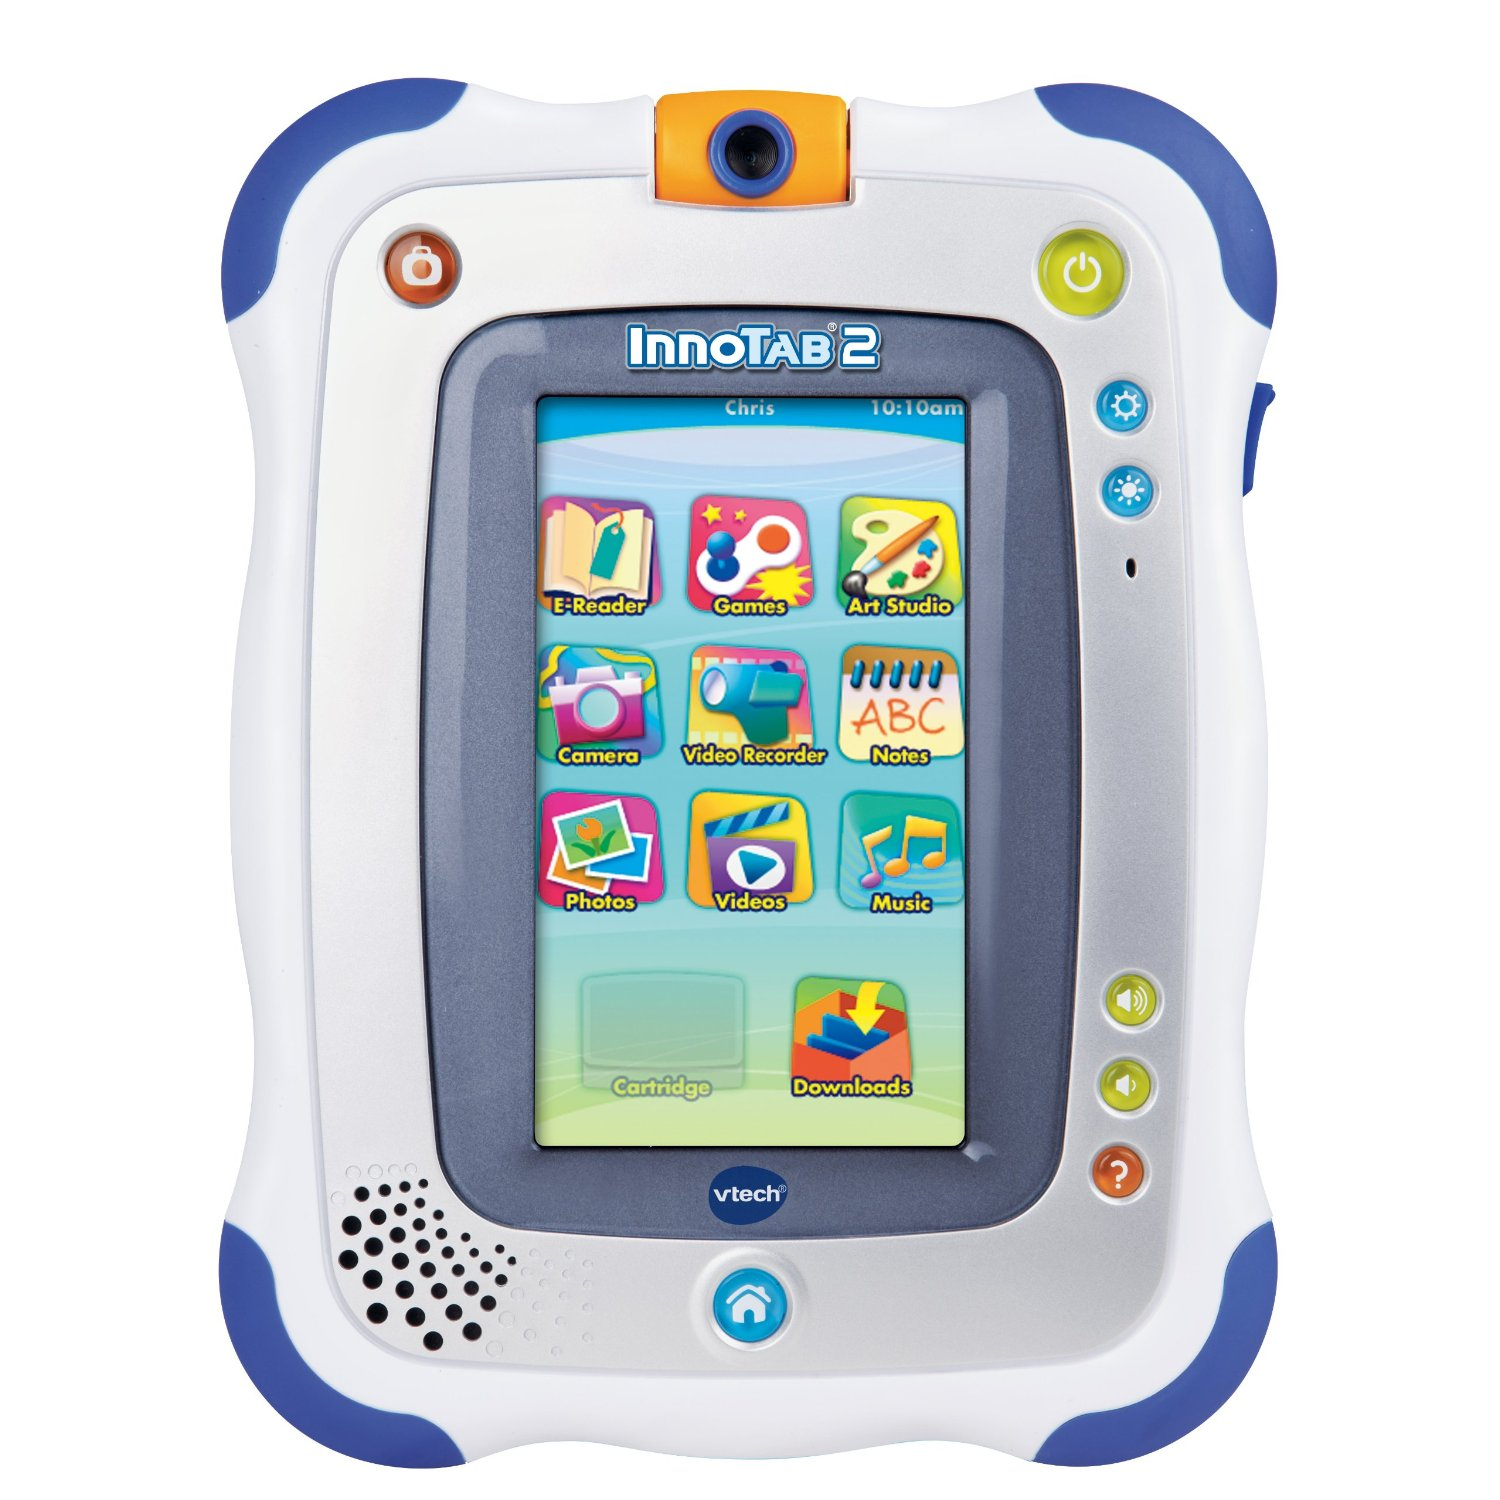 If Santa is bringing your kiddos a LeapFrog LeapPad Explorer for Christmas, you may want to open it up and get it setup before Christmas morning. Besides the fact that there is some setup that needs to be done including connecting it to your computer to download updates and the free .